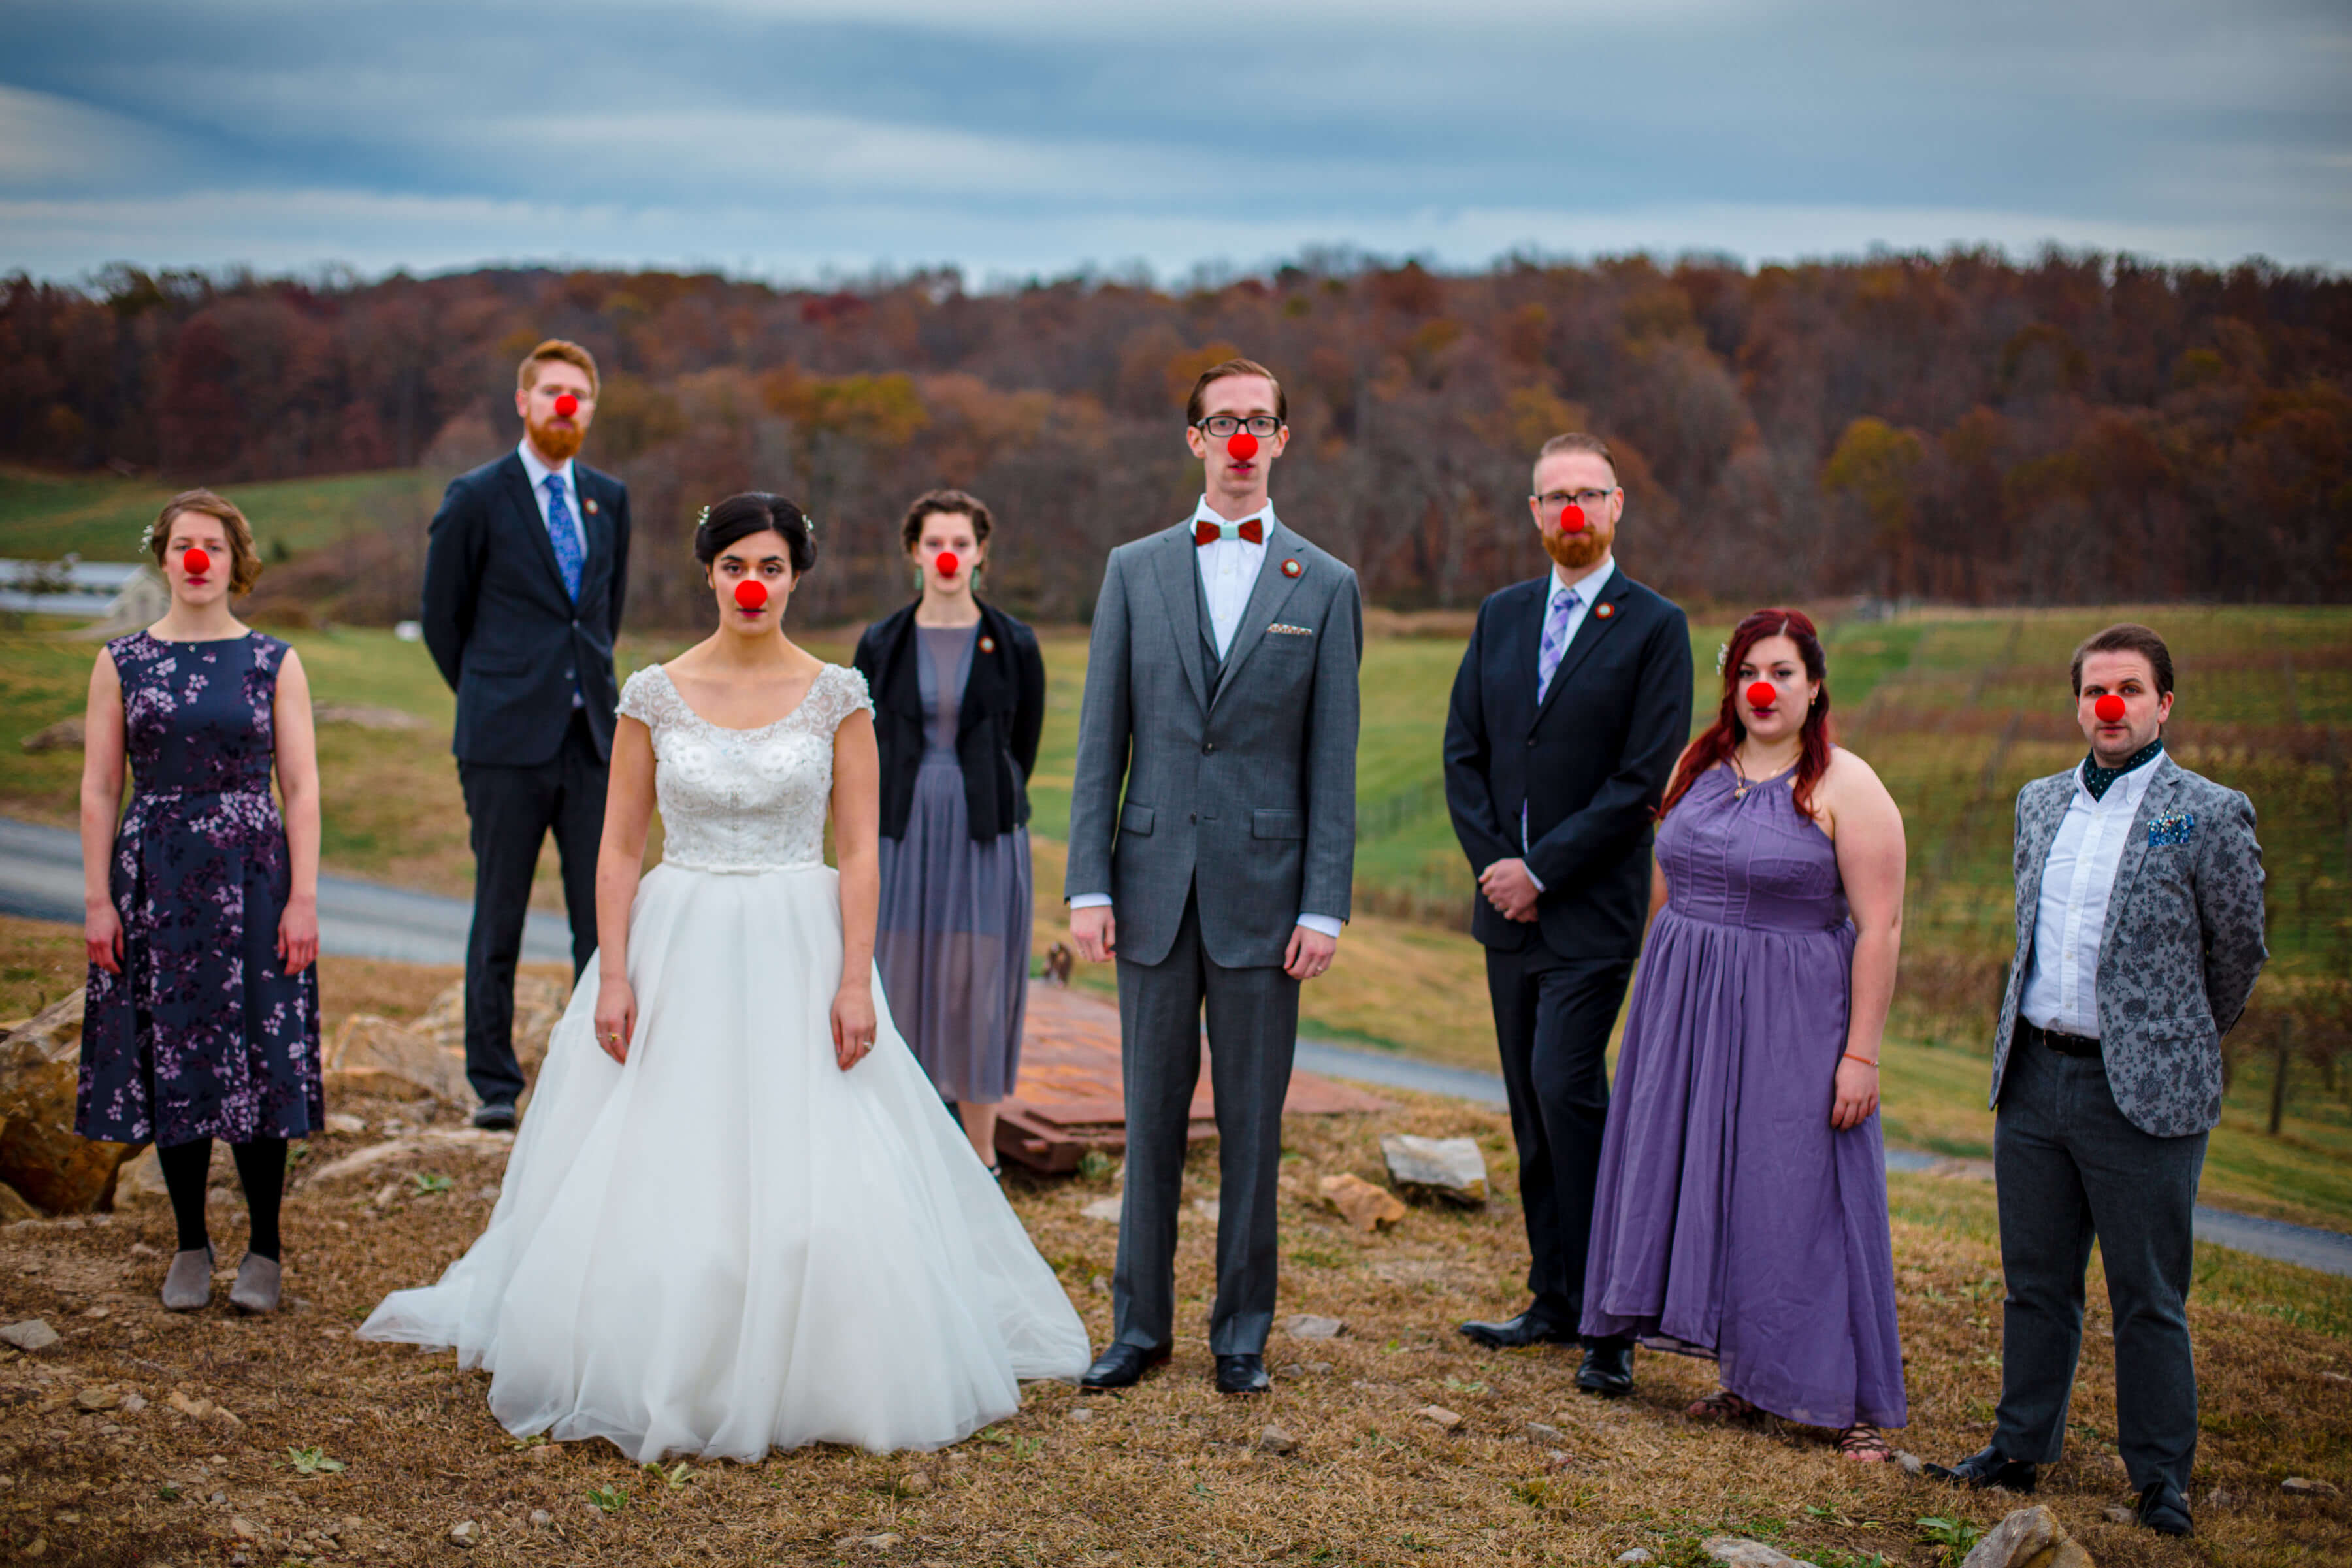 bridal party with red noses portrait- photo by Bee Two Sweet